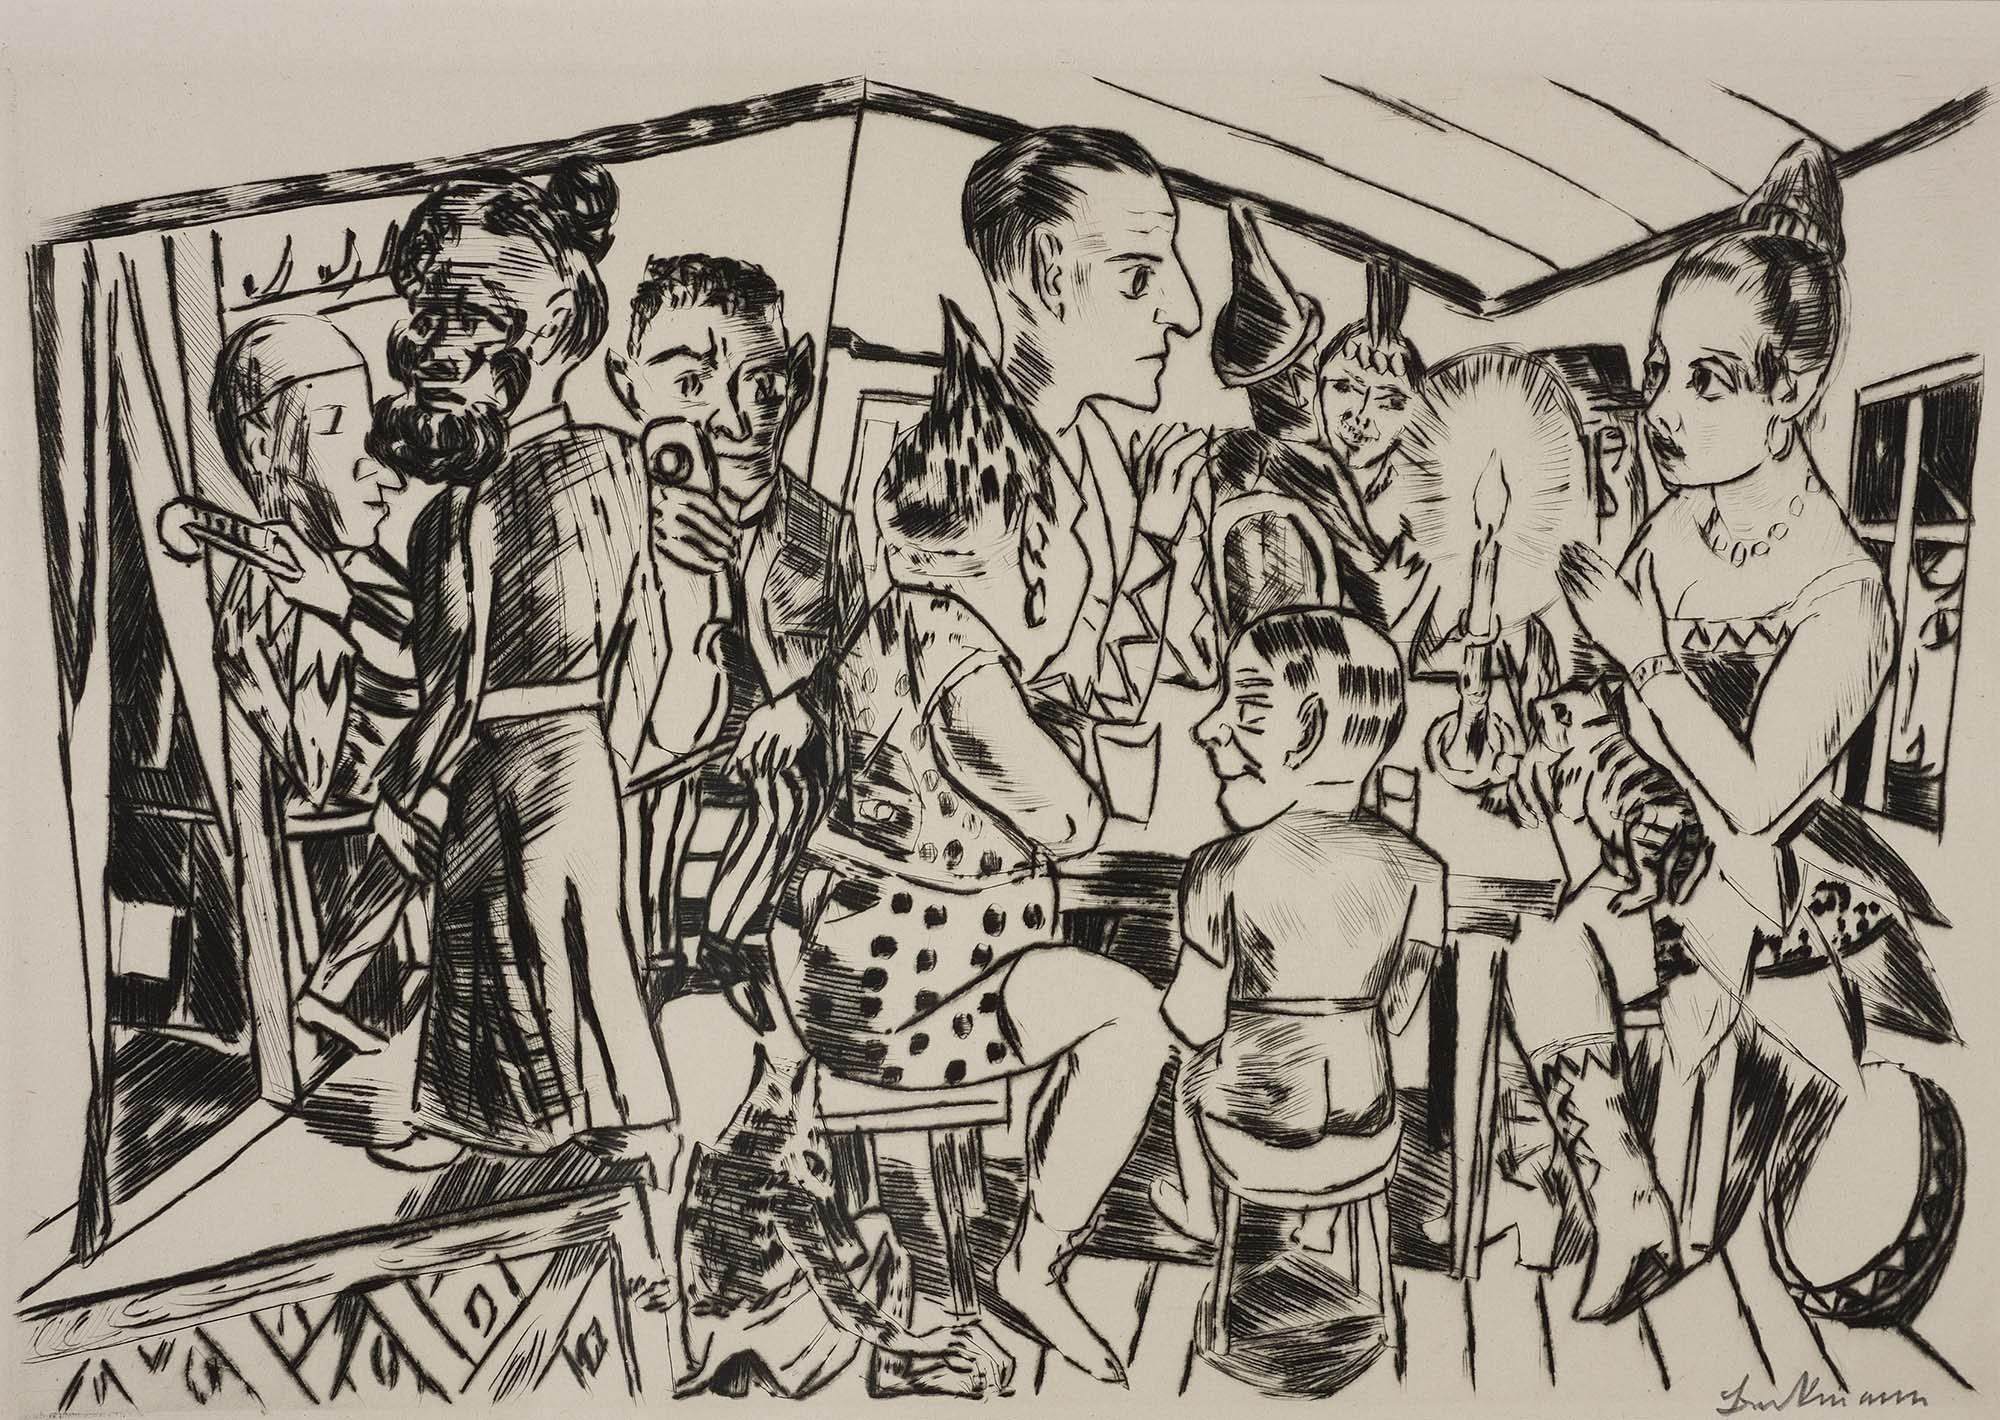 """Max Beckmann (German, 1884–1950) Hinter den Kulissen (Behind the Scenes) from the series """"Jahrmarkt"""" (""""Annual Fair""""), 1921. Drypoint on japan paper, 8 3/8 x 12 3/4 in. Partial Gift of David P. Tunick, Class of 1966 in memory of J. Kirk T. Varnedoe, Class of 1967 and Museum Purchase, Karl E. Weston Memorial Fund, M.2003.25.C"""